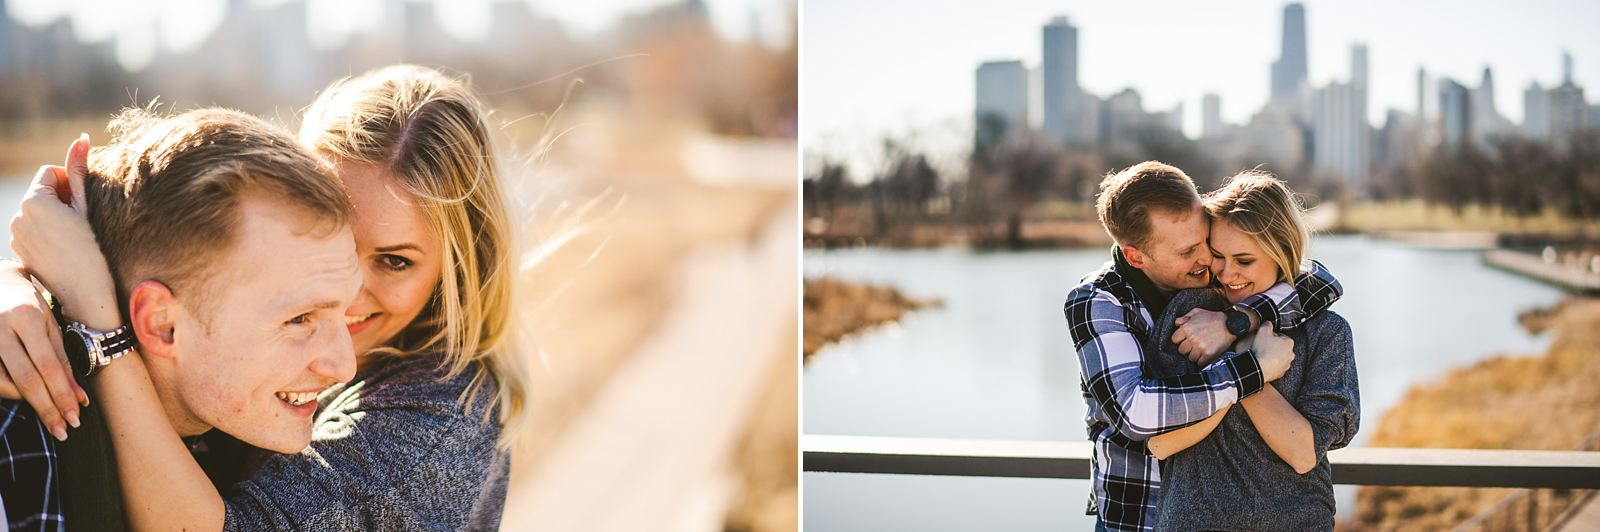 09 chicago proposal photography inspiration - The Prefect Chicago Proposal // Eva + Vitalij